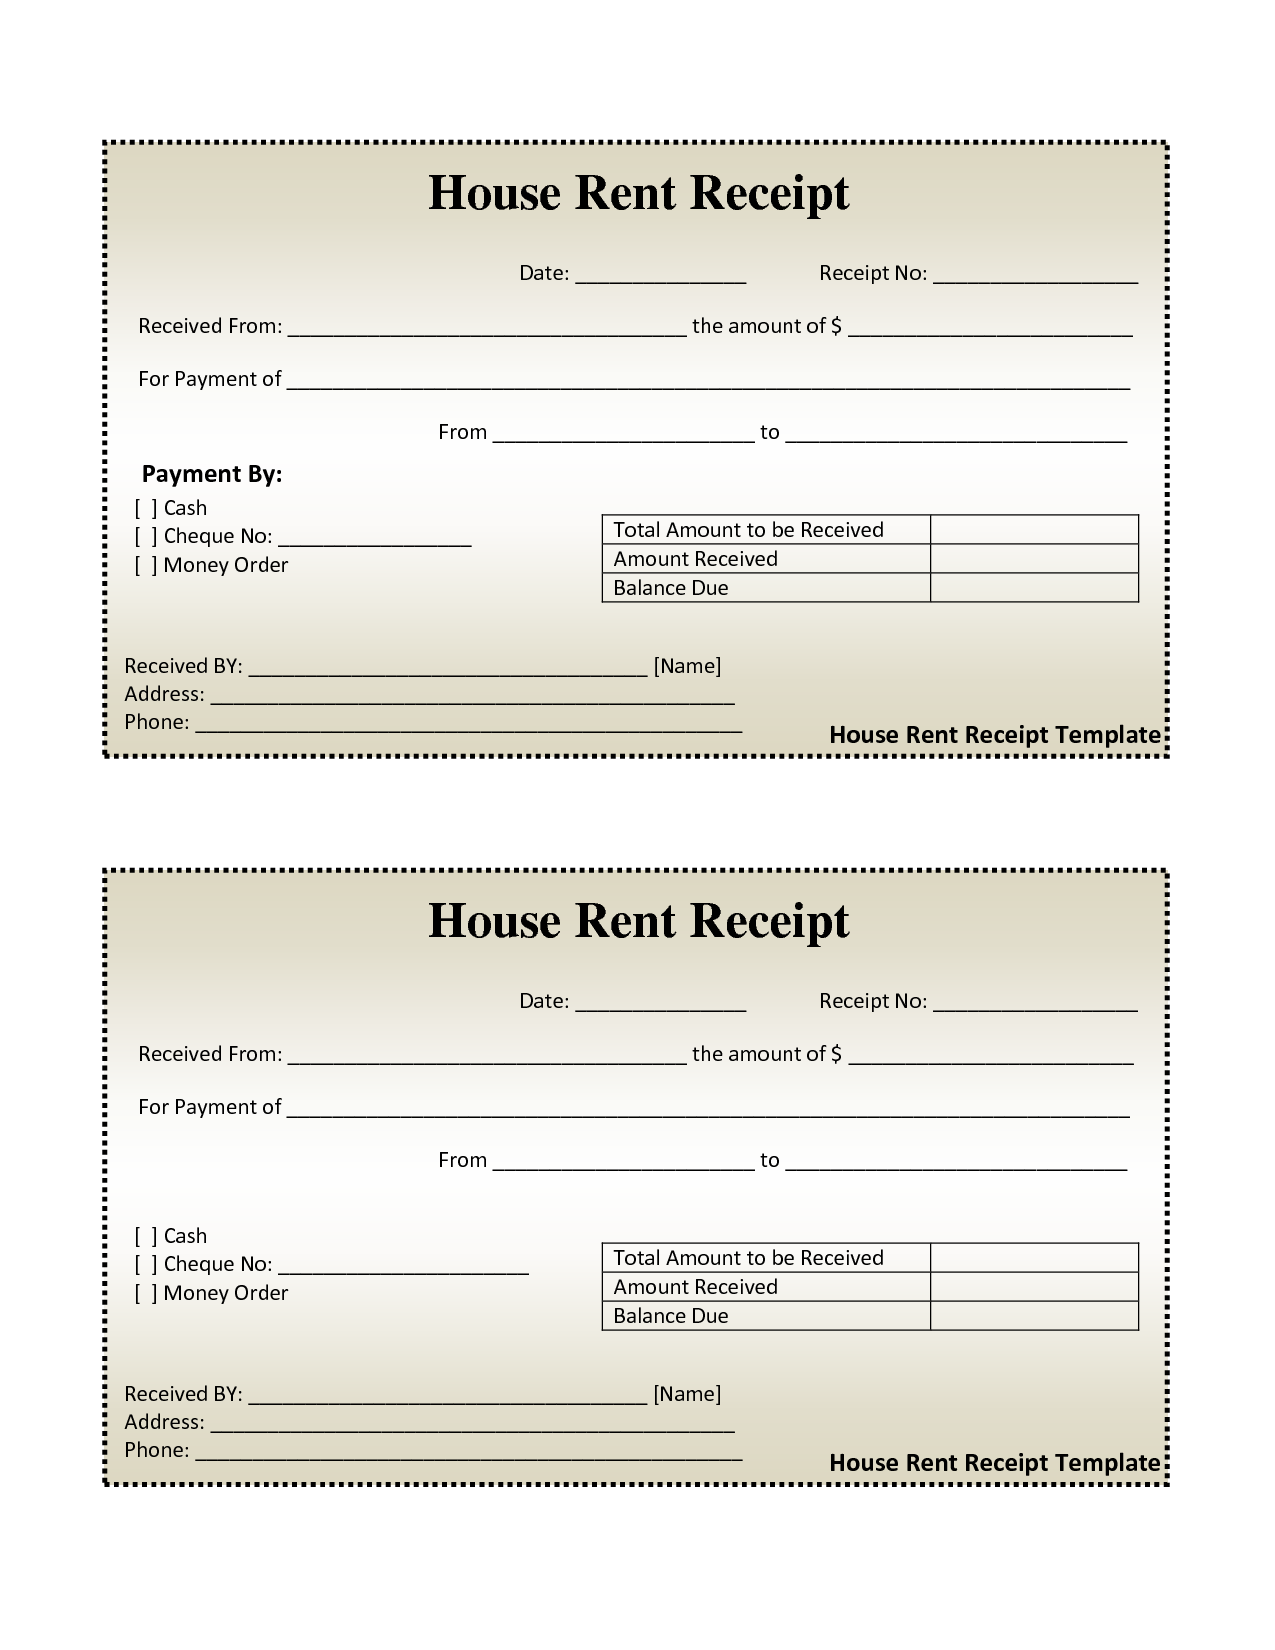 free house rental invoice – Rent Receipt